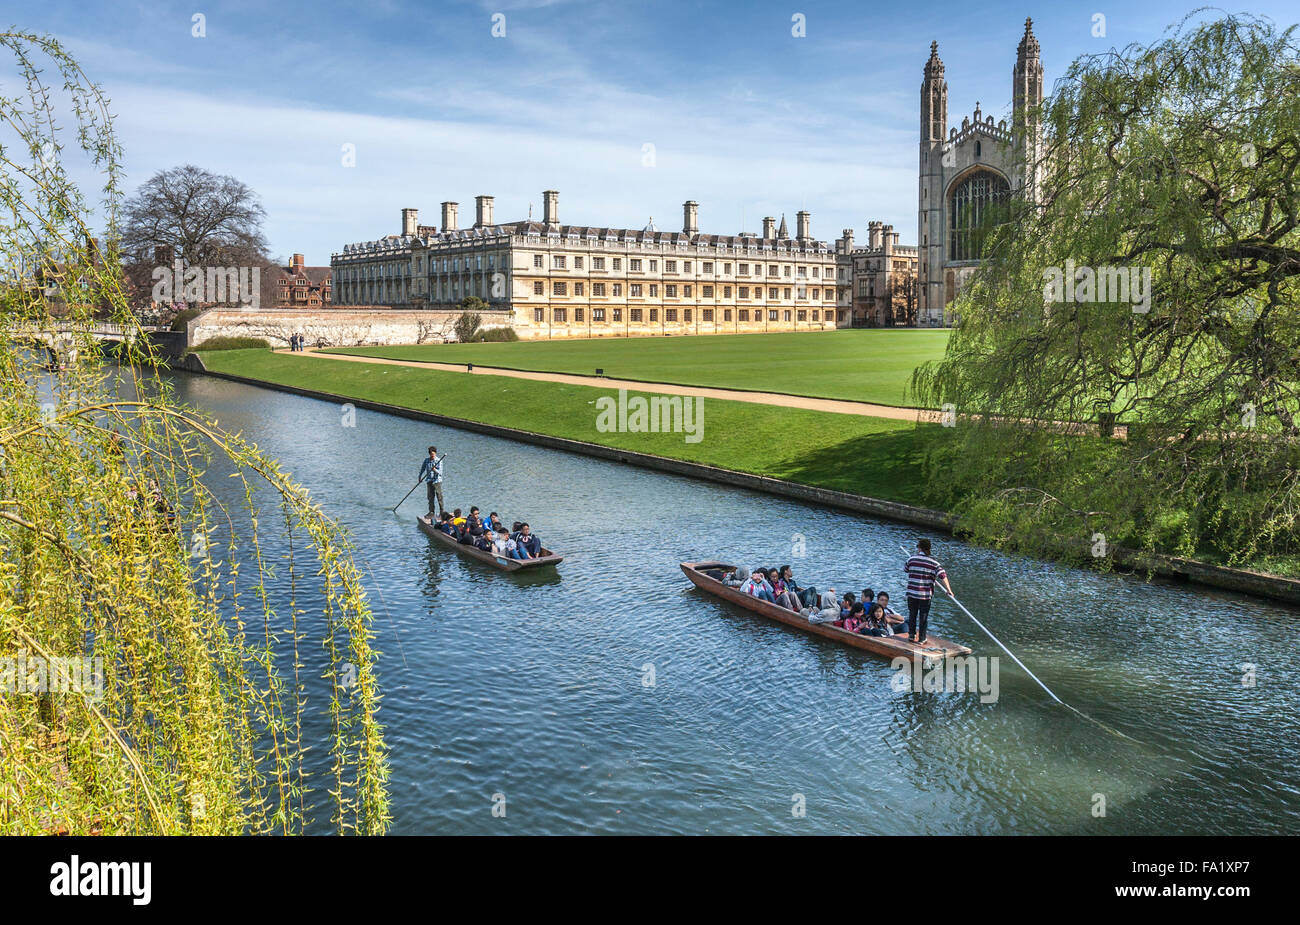 Punting on the river at Cambridge - Stock Image